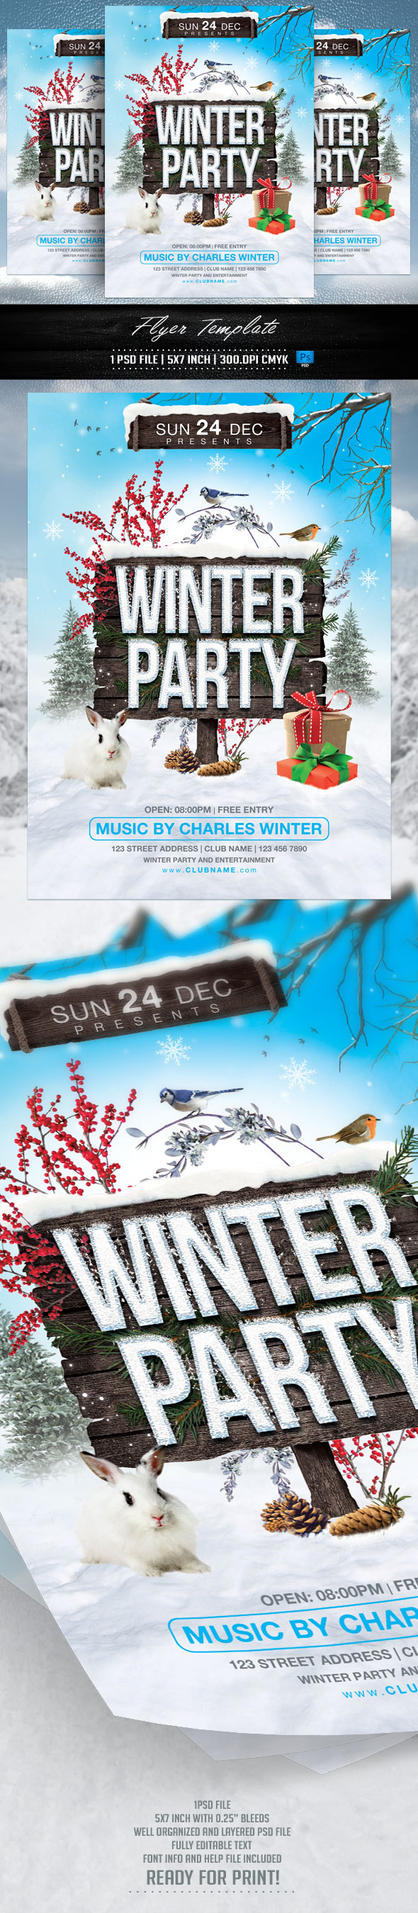 Winter Party Flyer Template by BriellDesign